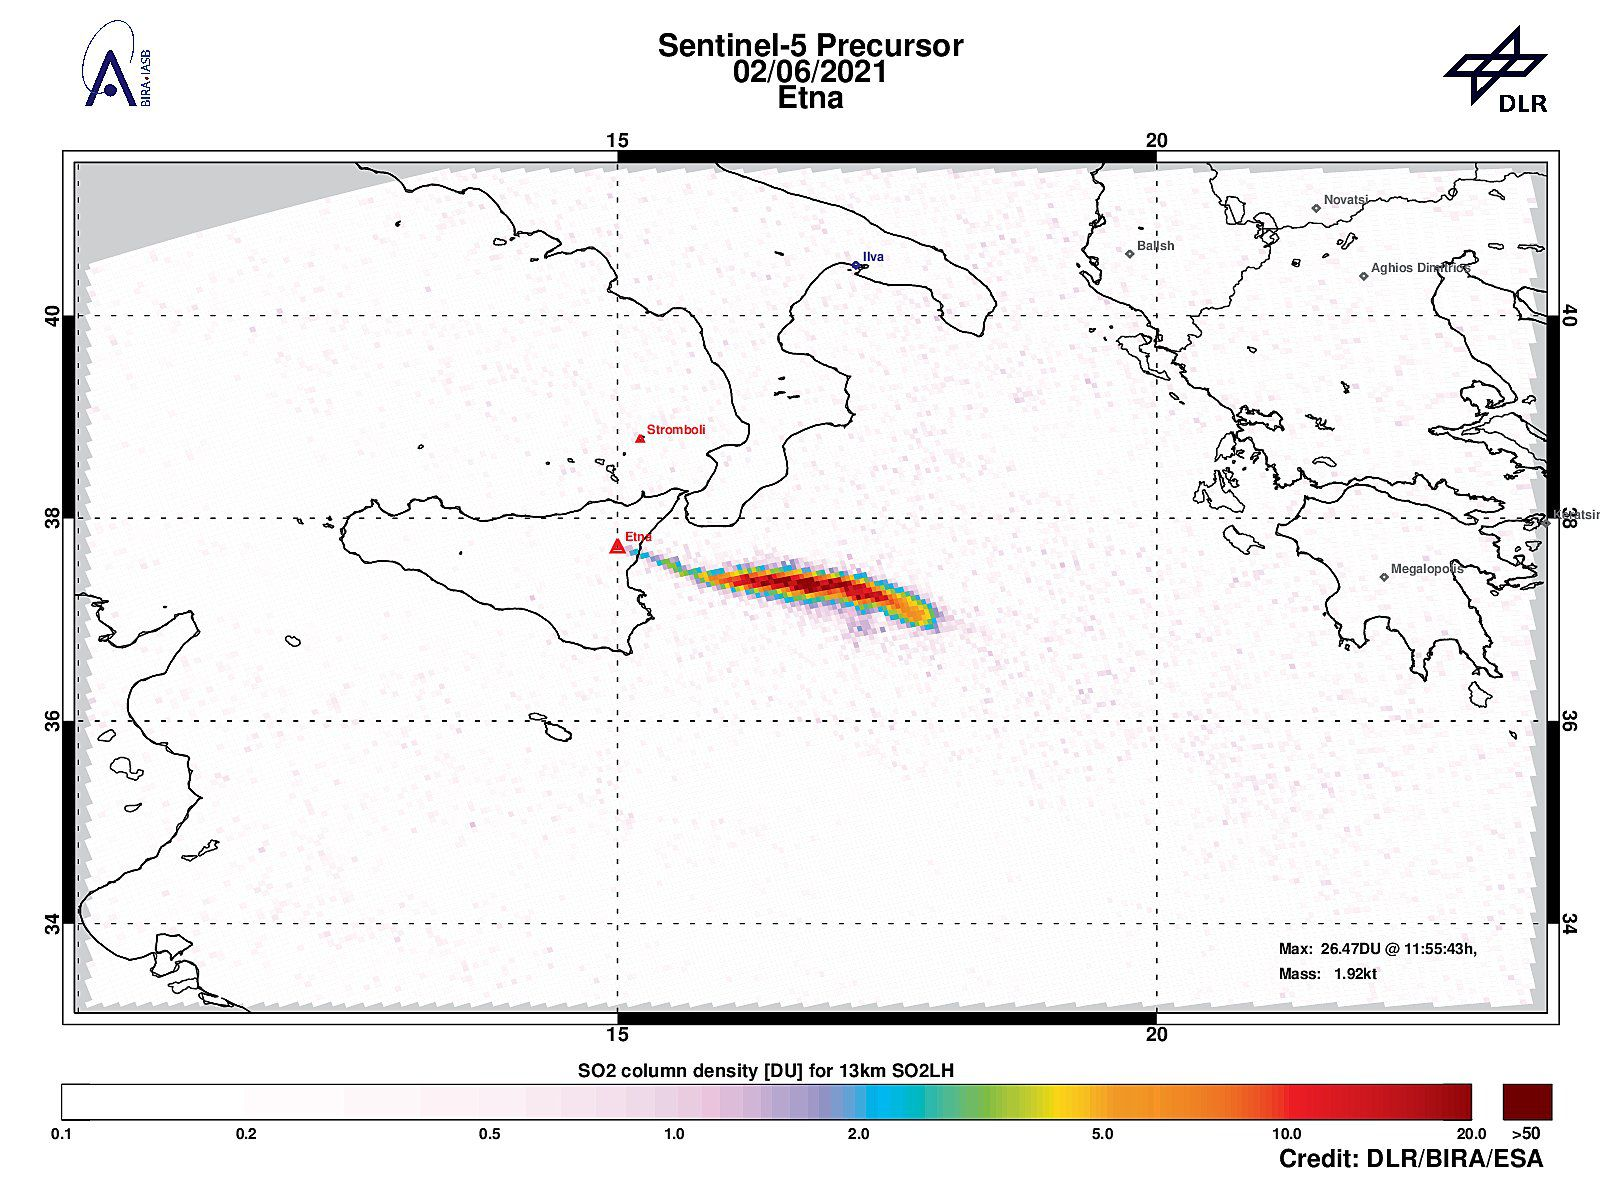 Etna - strong plume of sulfur dioxide with 24.71DU of SO2 at an altitude of ~ 12km on 06/02/2021 - Sentinel-5P tropomi / DLR / BIRA / ESA